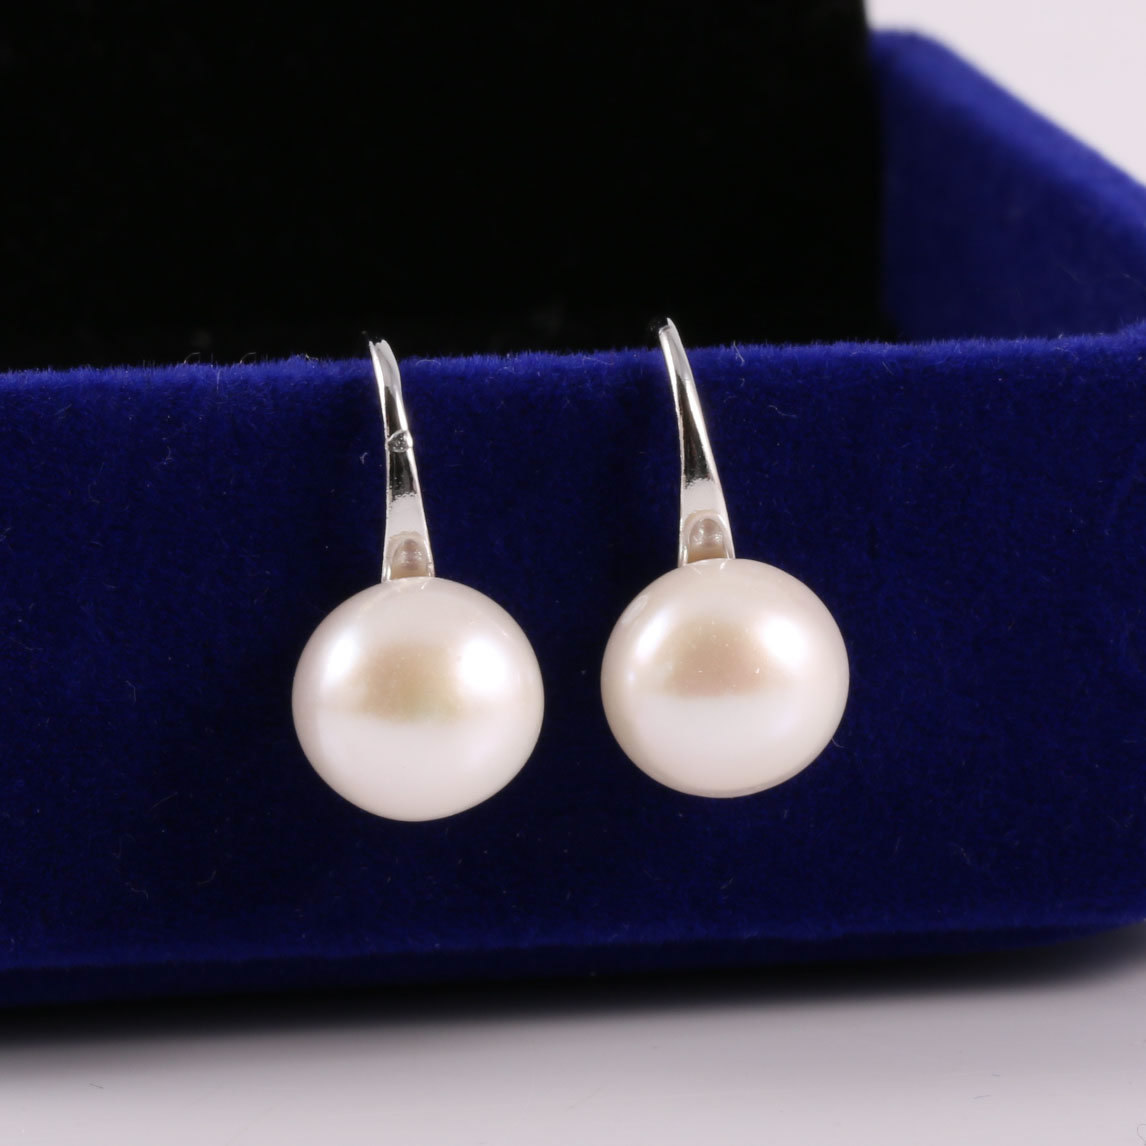 2019 New Women Pearl Ear Nails Stud Earrings Round Nature Freshwater Pearl Earring for DIY Jewelry Size8 9mm in Stud Earrings from Jewelry Accessories